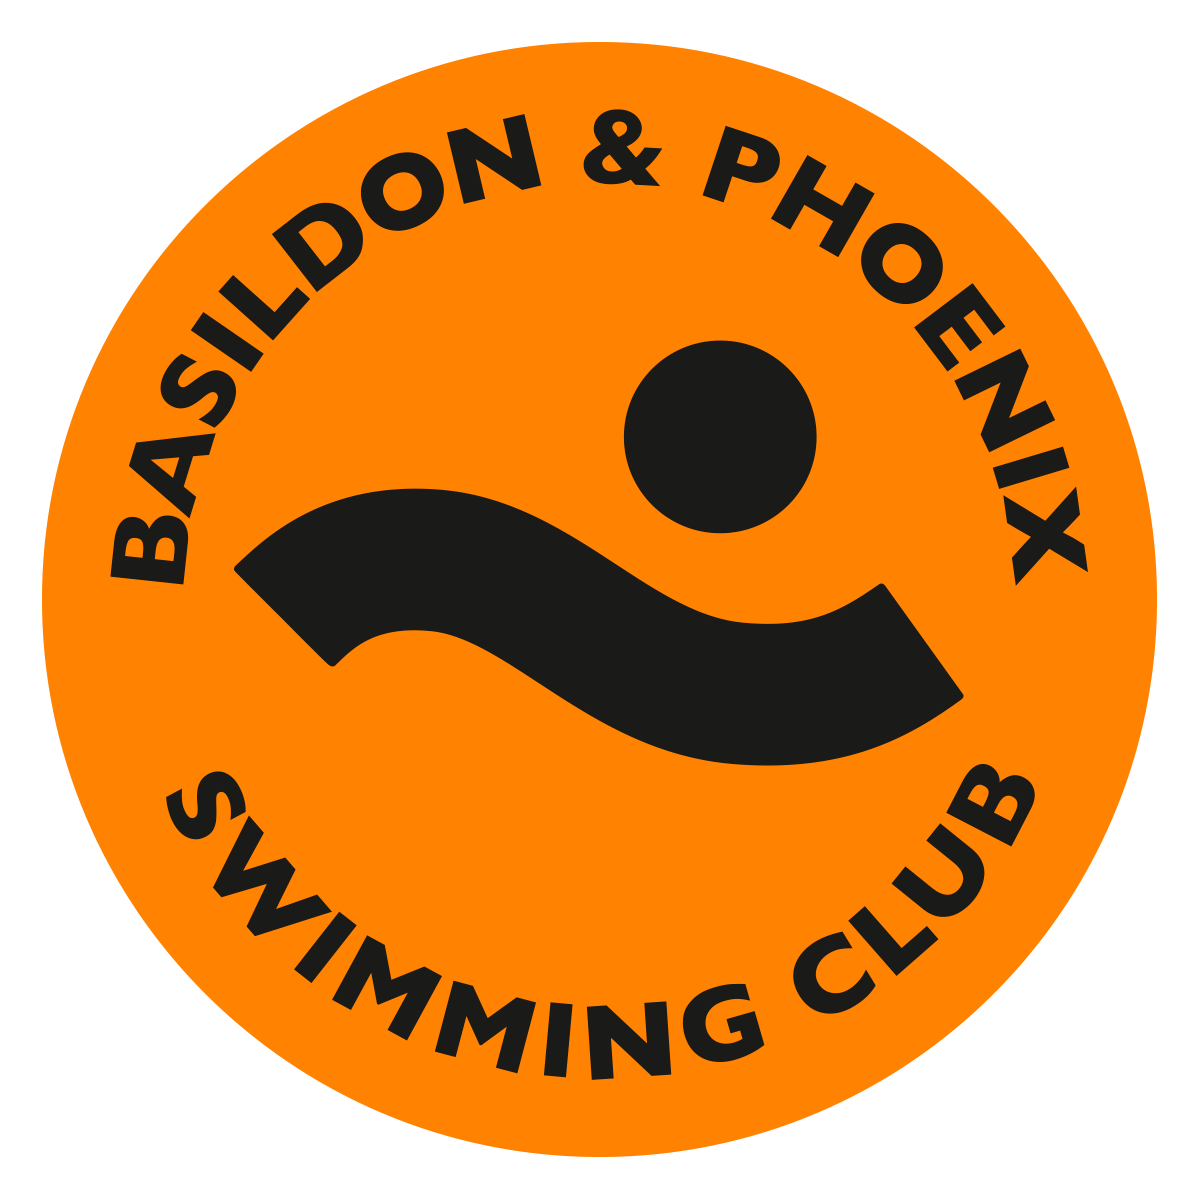 Basildon & Phoenix Swimming Club